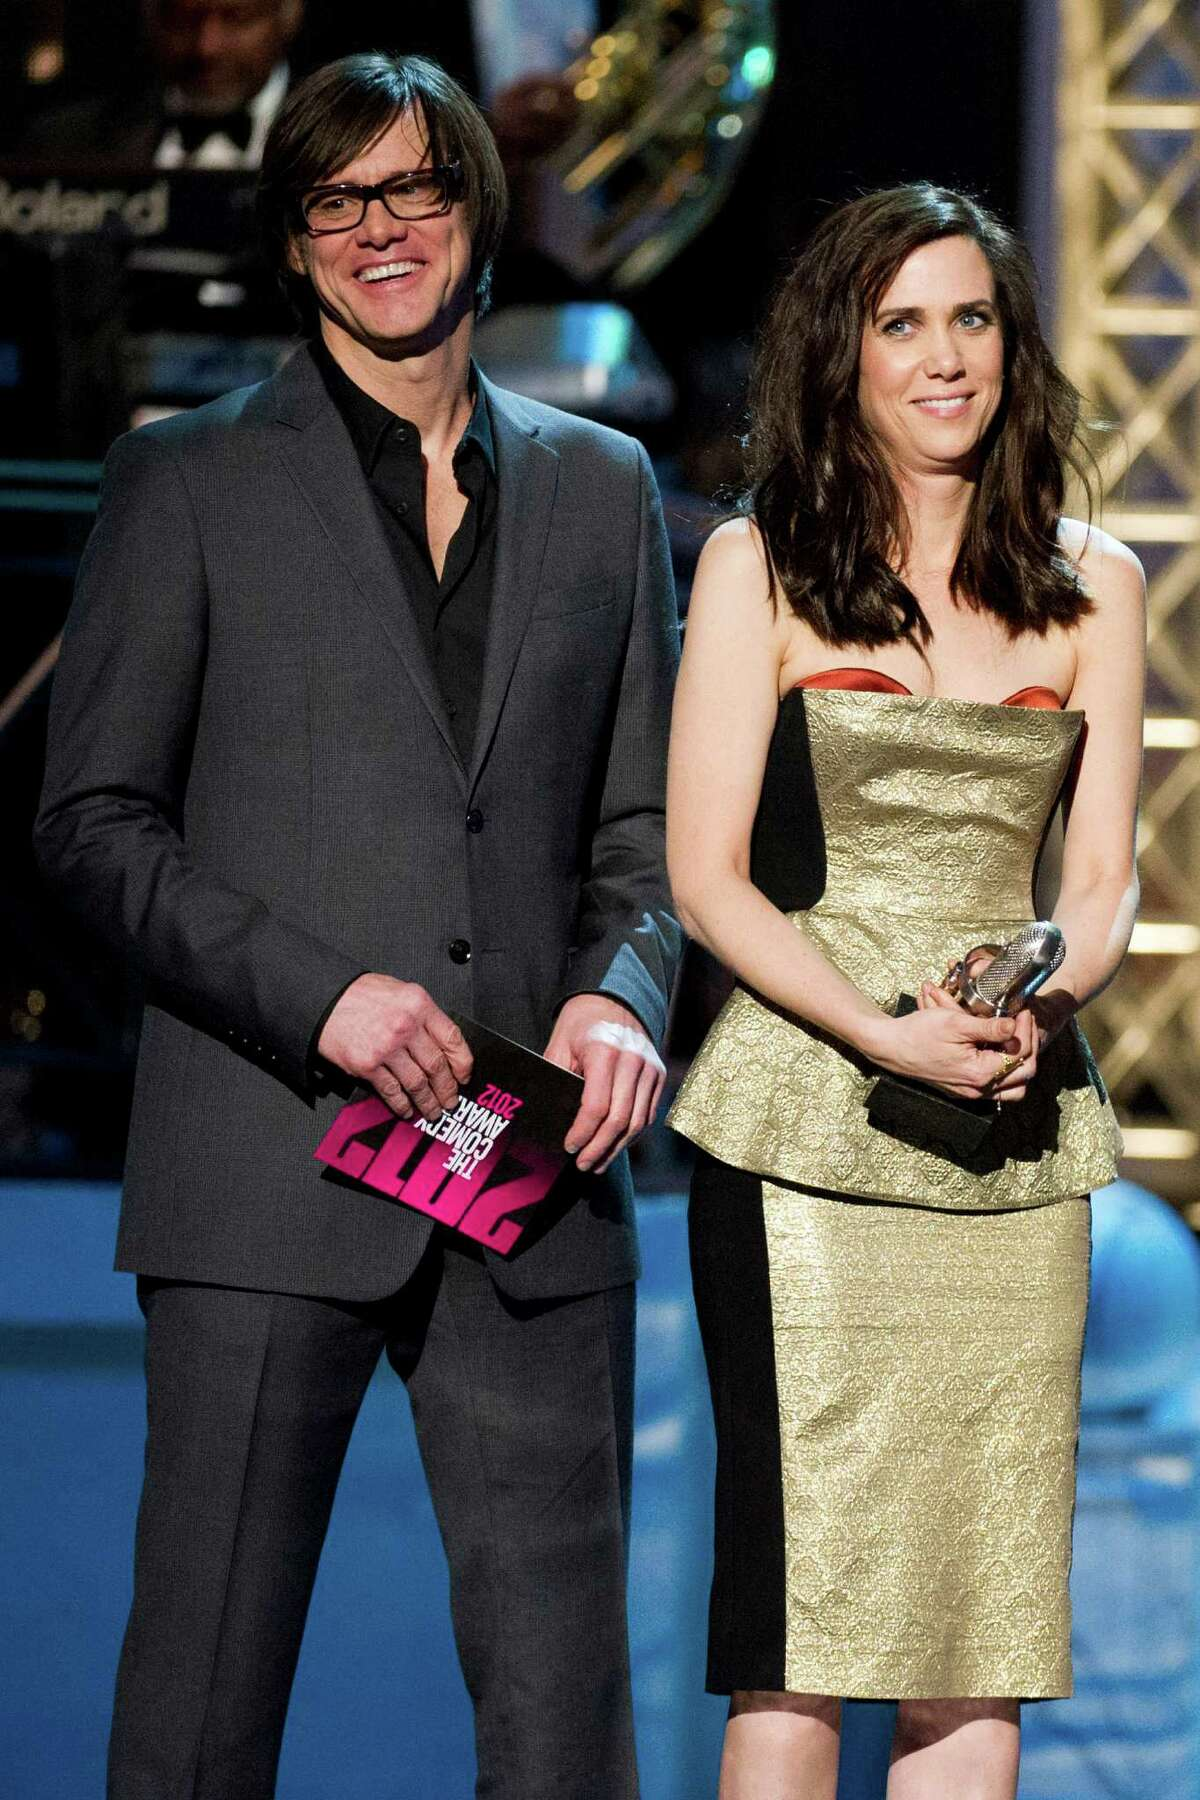 Jim Carrey and Kristen Wiig appear onstage at The 2012 Comedy Awards in New York, Saturday, April 28, 2012.